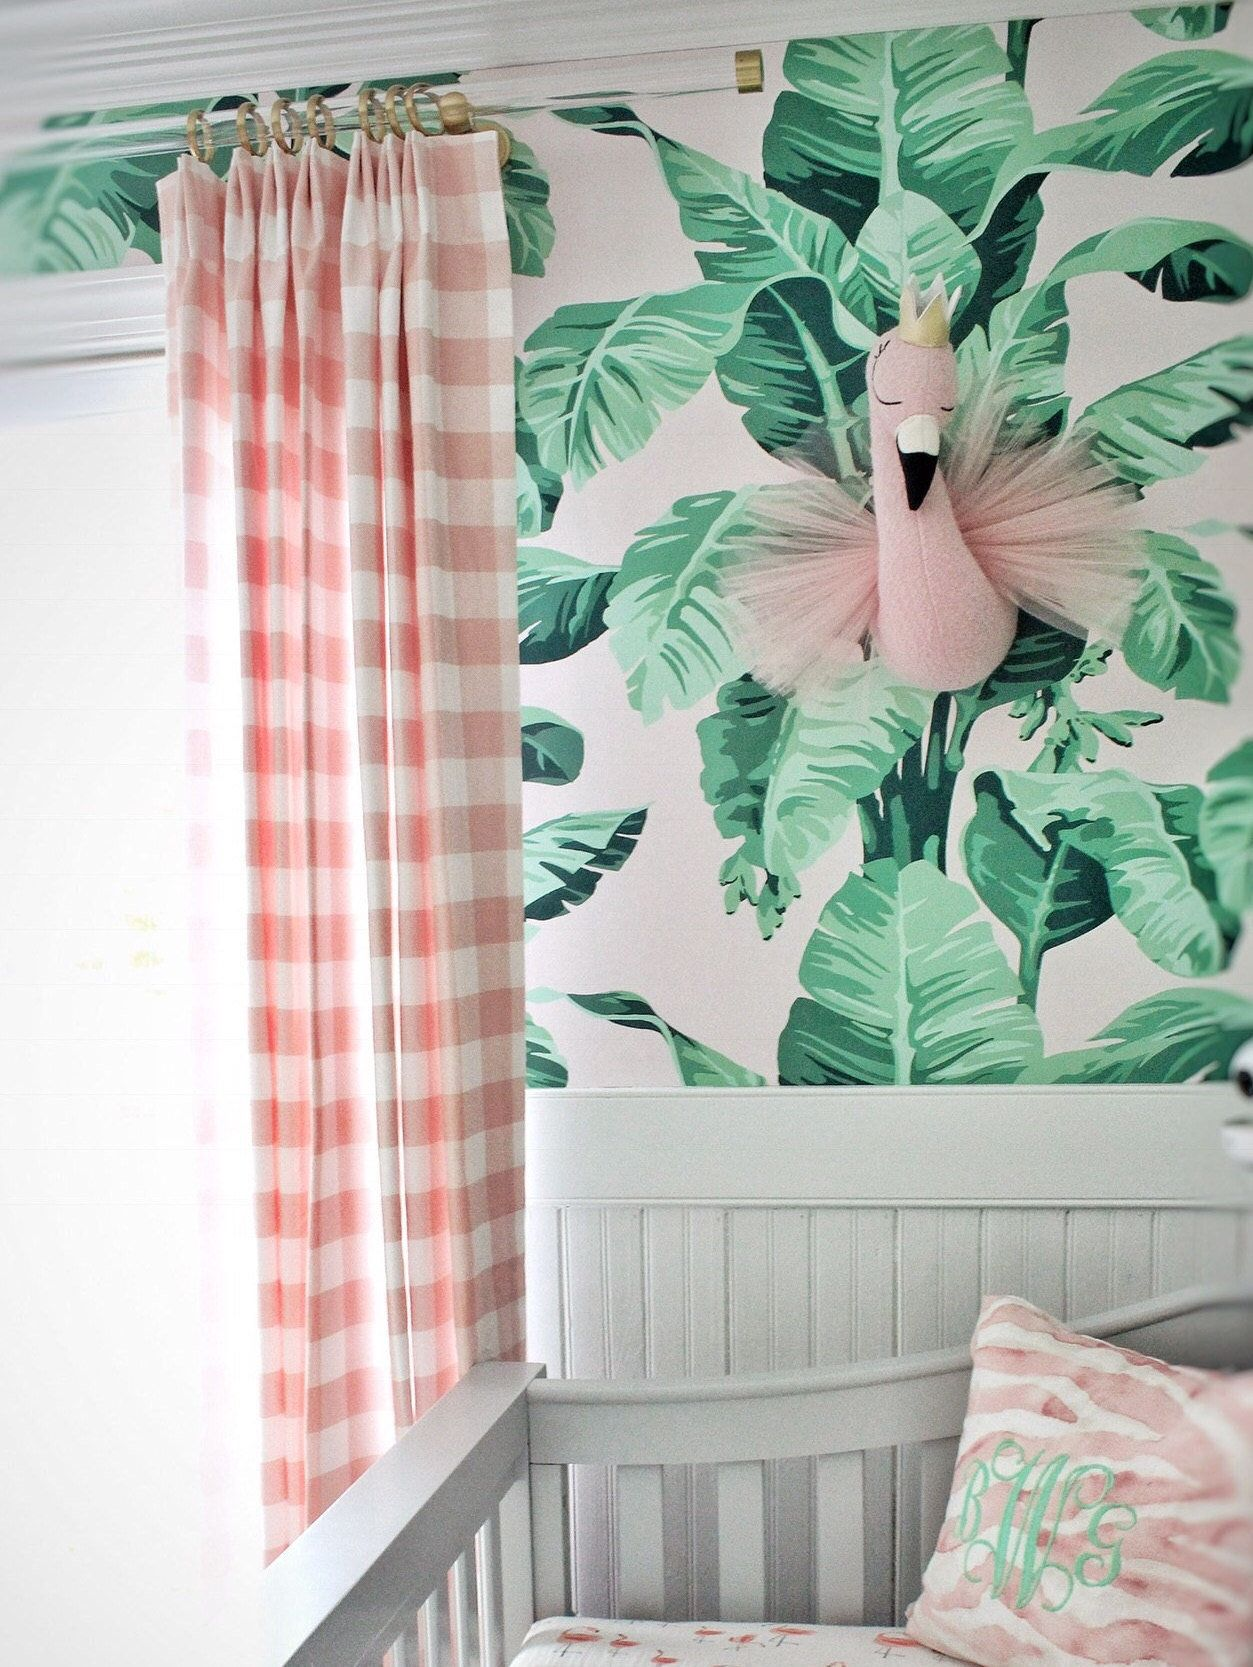 Pin by Rebecca James on Baby stuff Drapes curtains